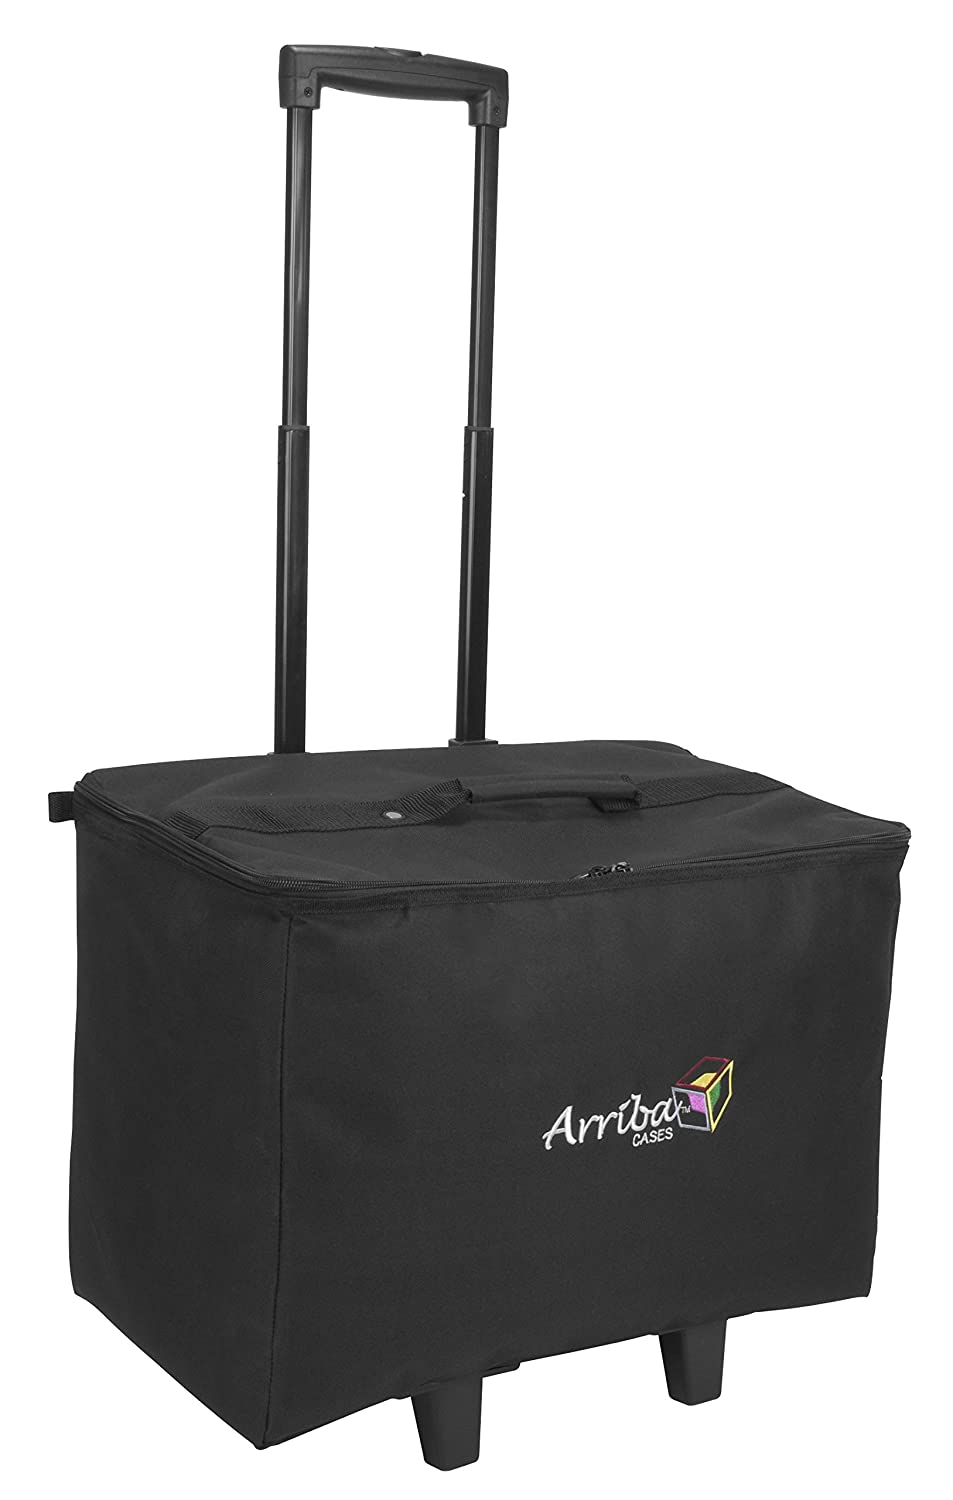 Arriba Padded Multi Purpose Case Acr-19 Bottom Rolling Stackable Case Dims 19X12X14 Inches 81QUAiz3fPL._SL1500_